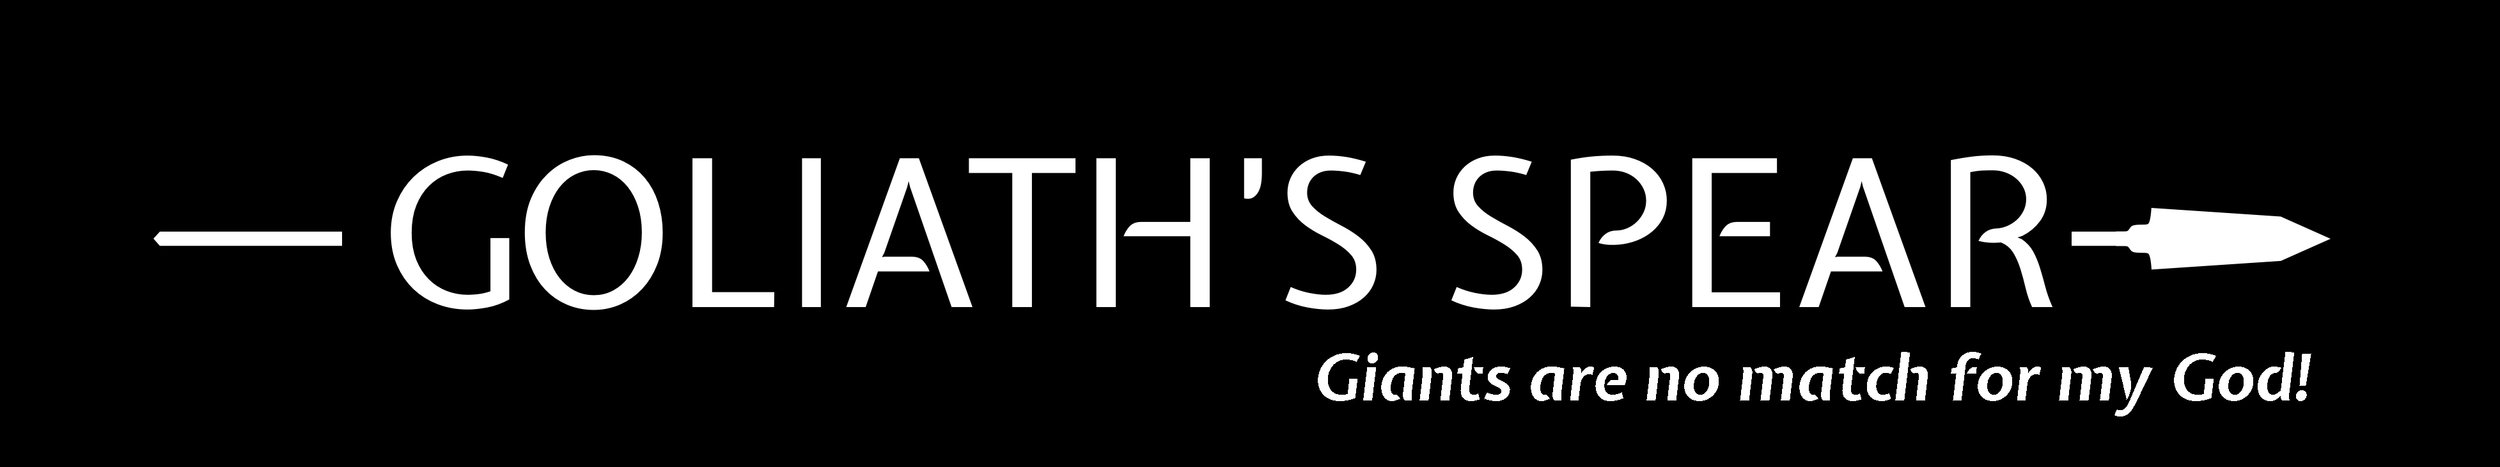 Goliaths_Spear_Black_on_White_Tagline_.jpg